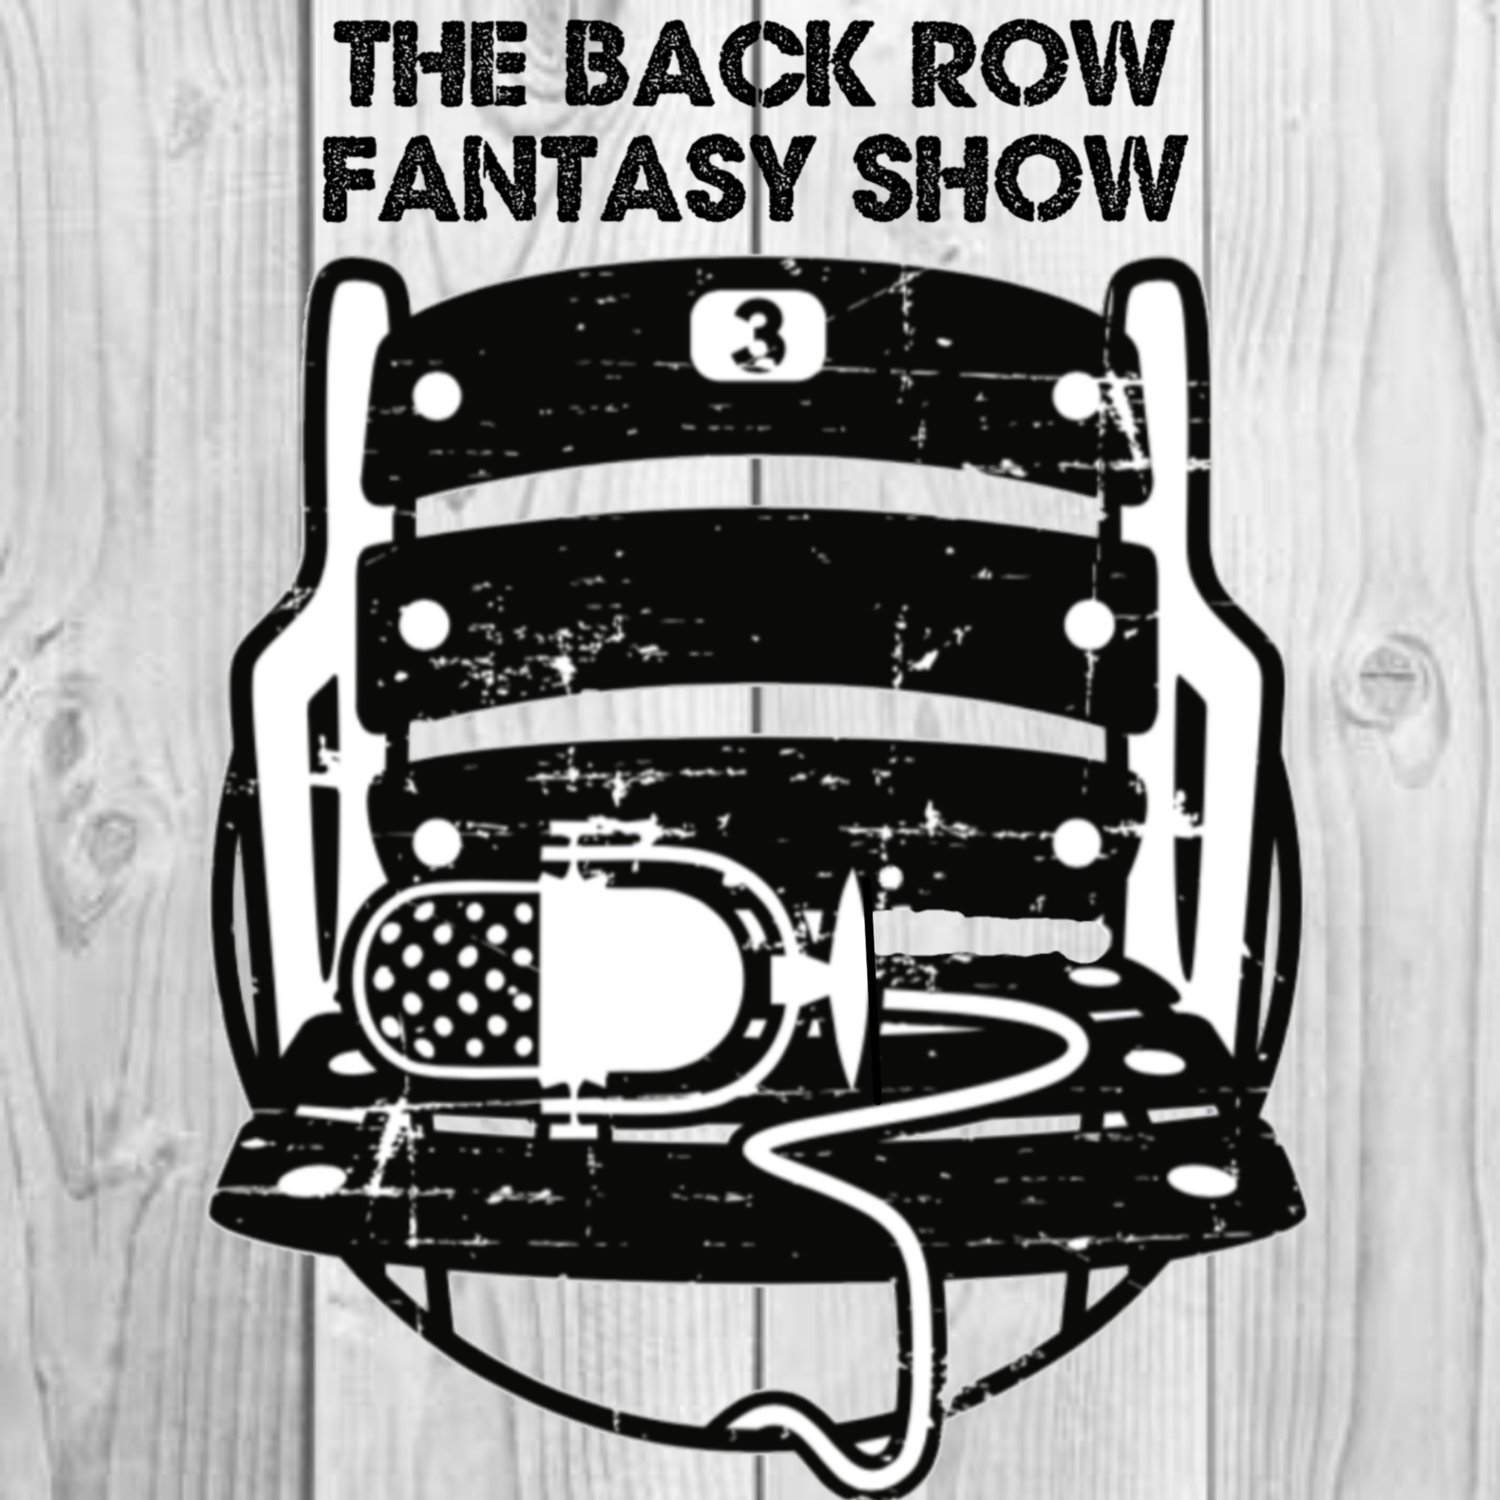 Articles — The Back Row Fantasy Show